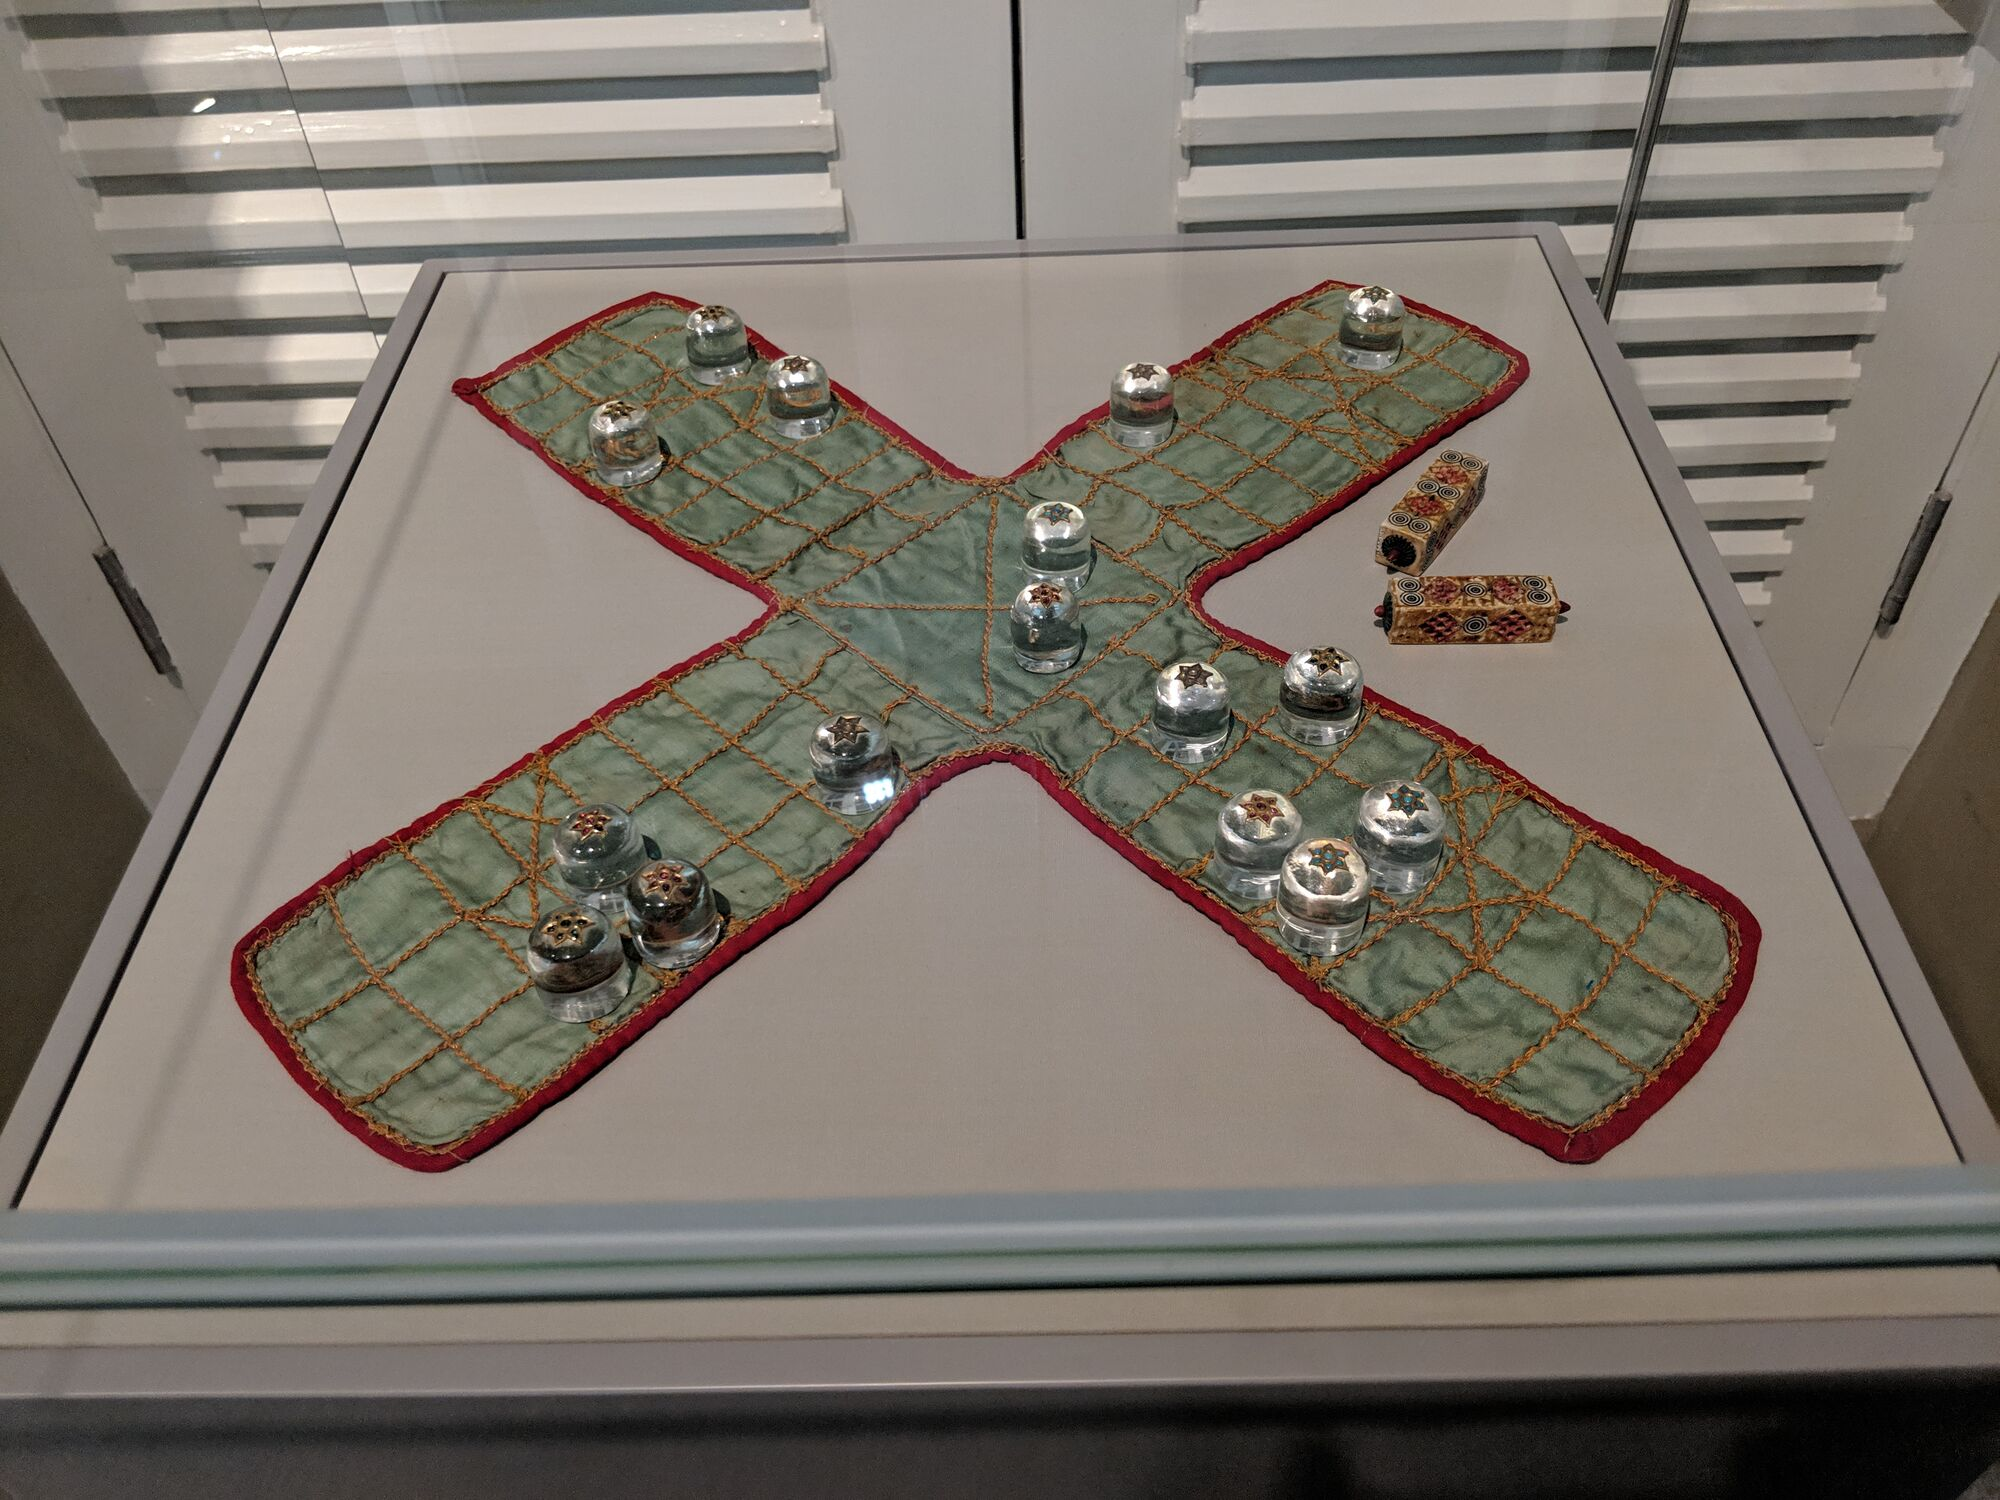 Pachisi set, Game Pieces, India 18th or 19th century, Rock crystal, gemstones, ivory, satin silk